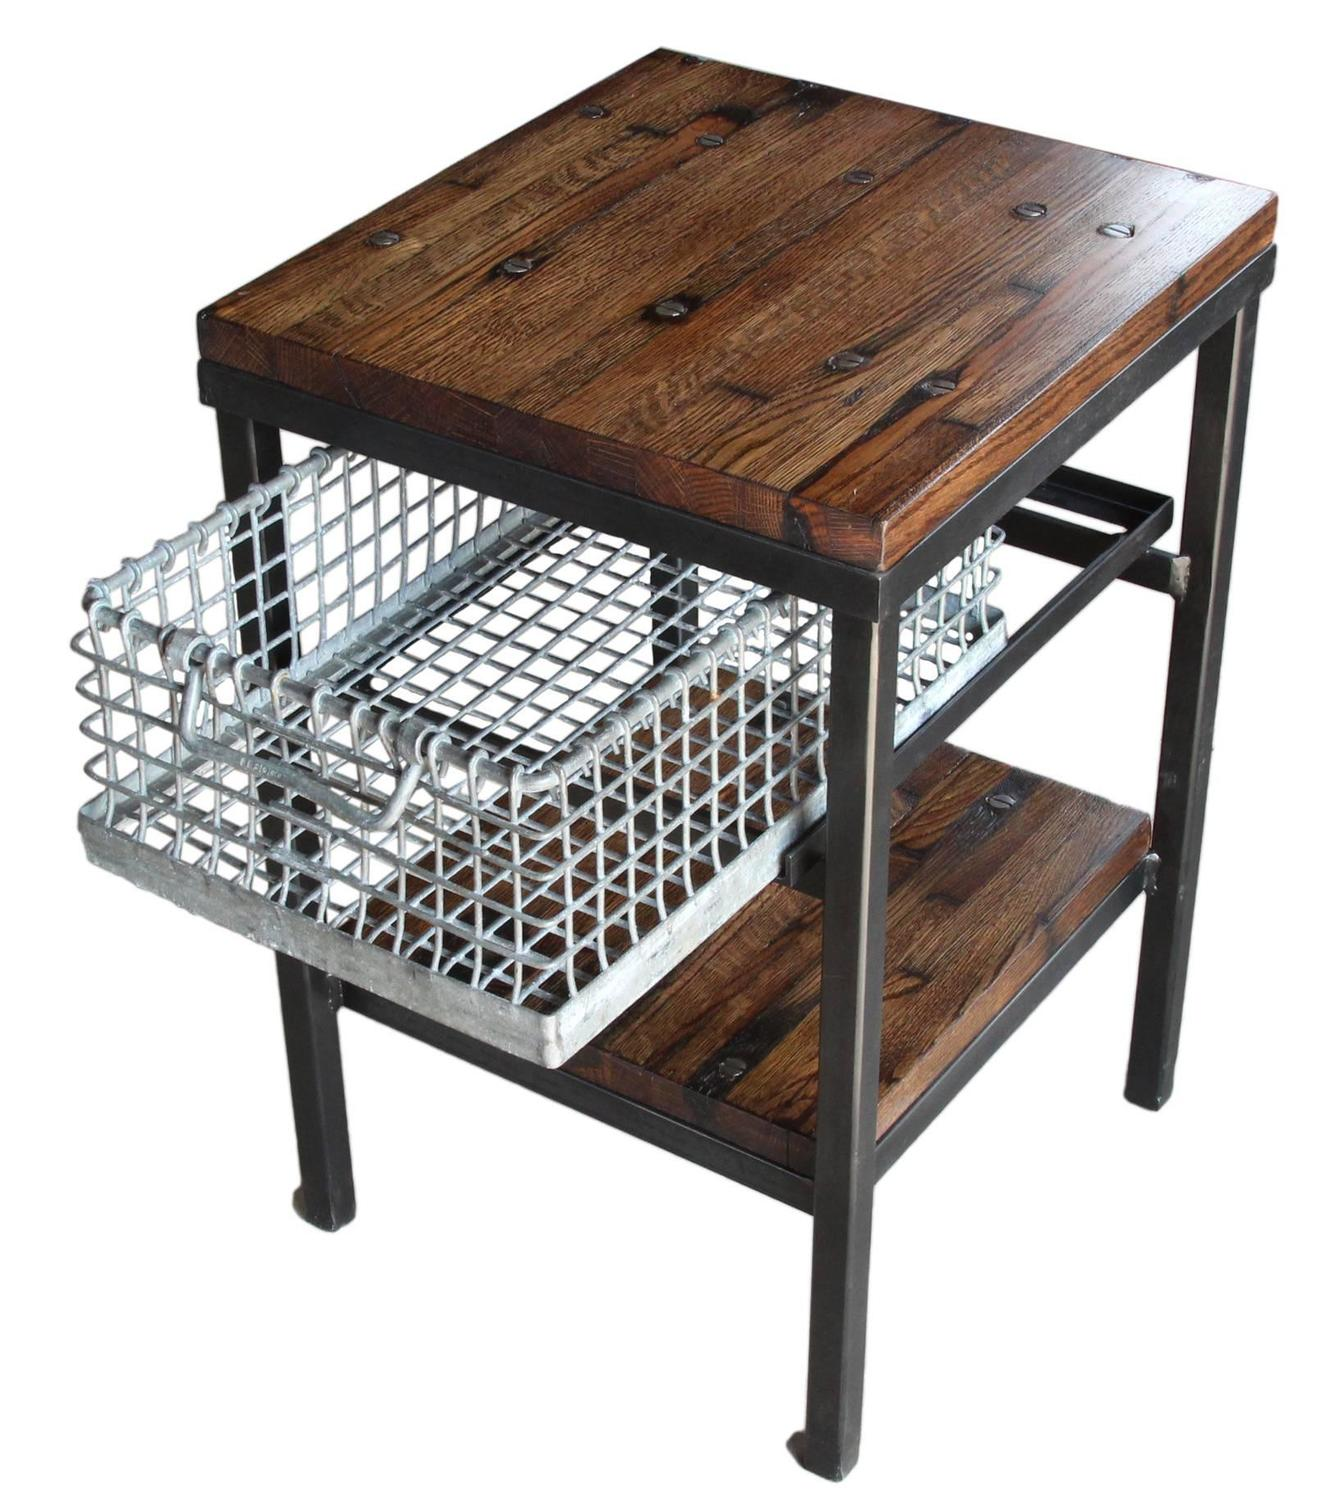 galvanized storage basket nightstand end table with shelf antique metal accent baskets dining room placemats beach umbrella tables pedestal side kitchen and stools pottery barn